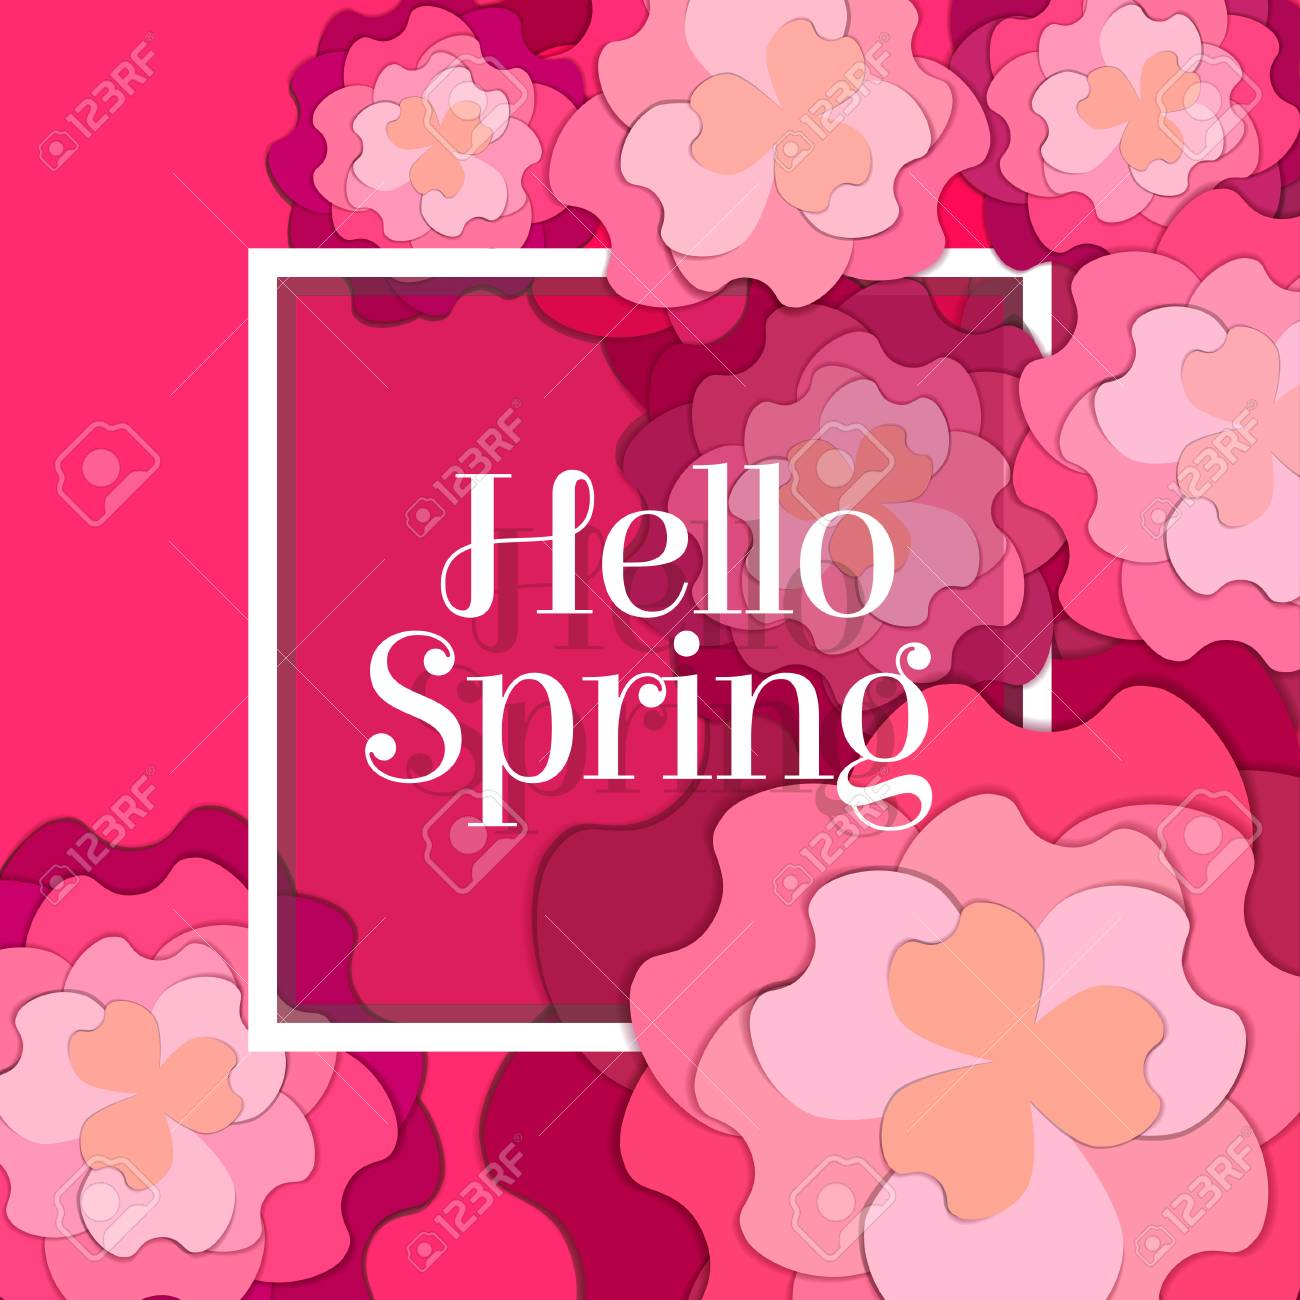 Hello Spring Poster With Paper Flowers Floral Postcard Or Banner